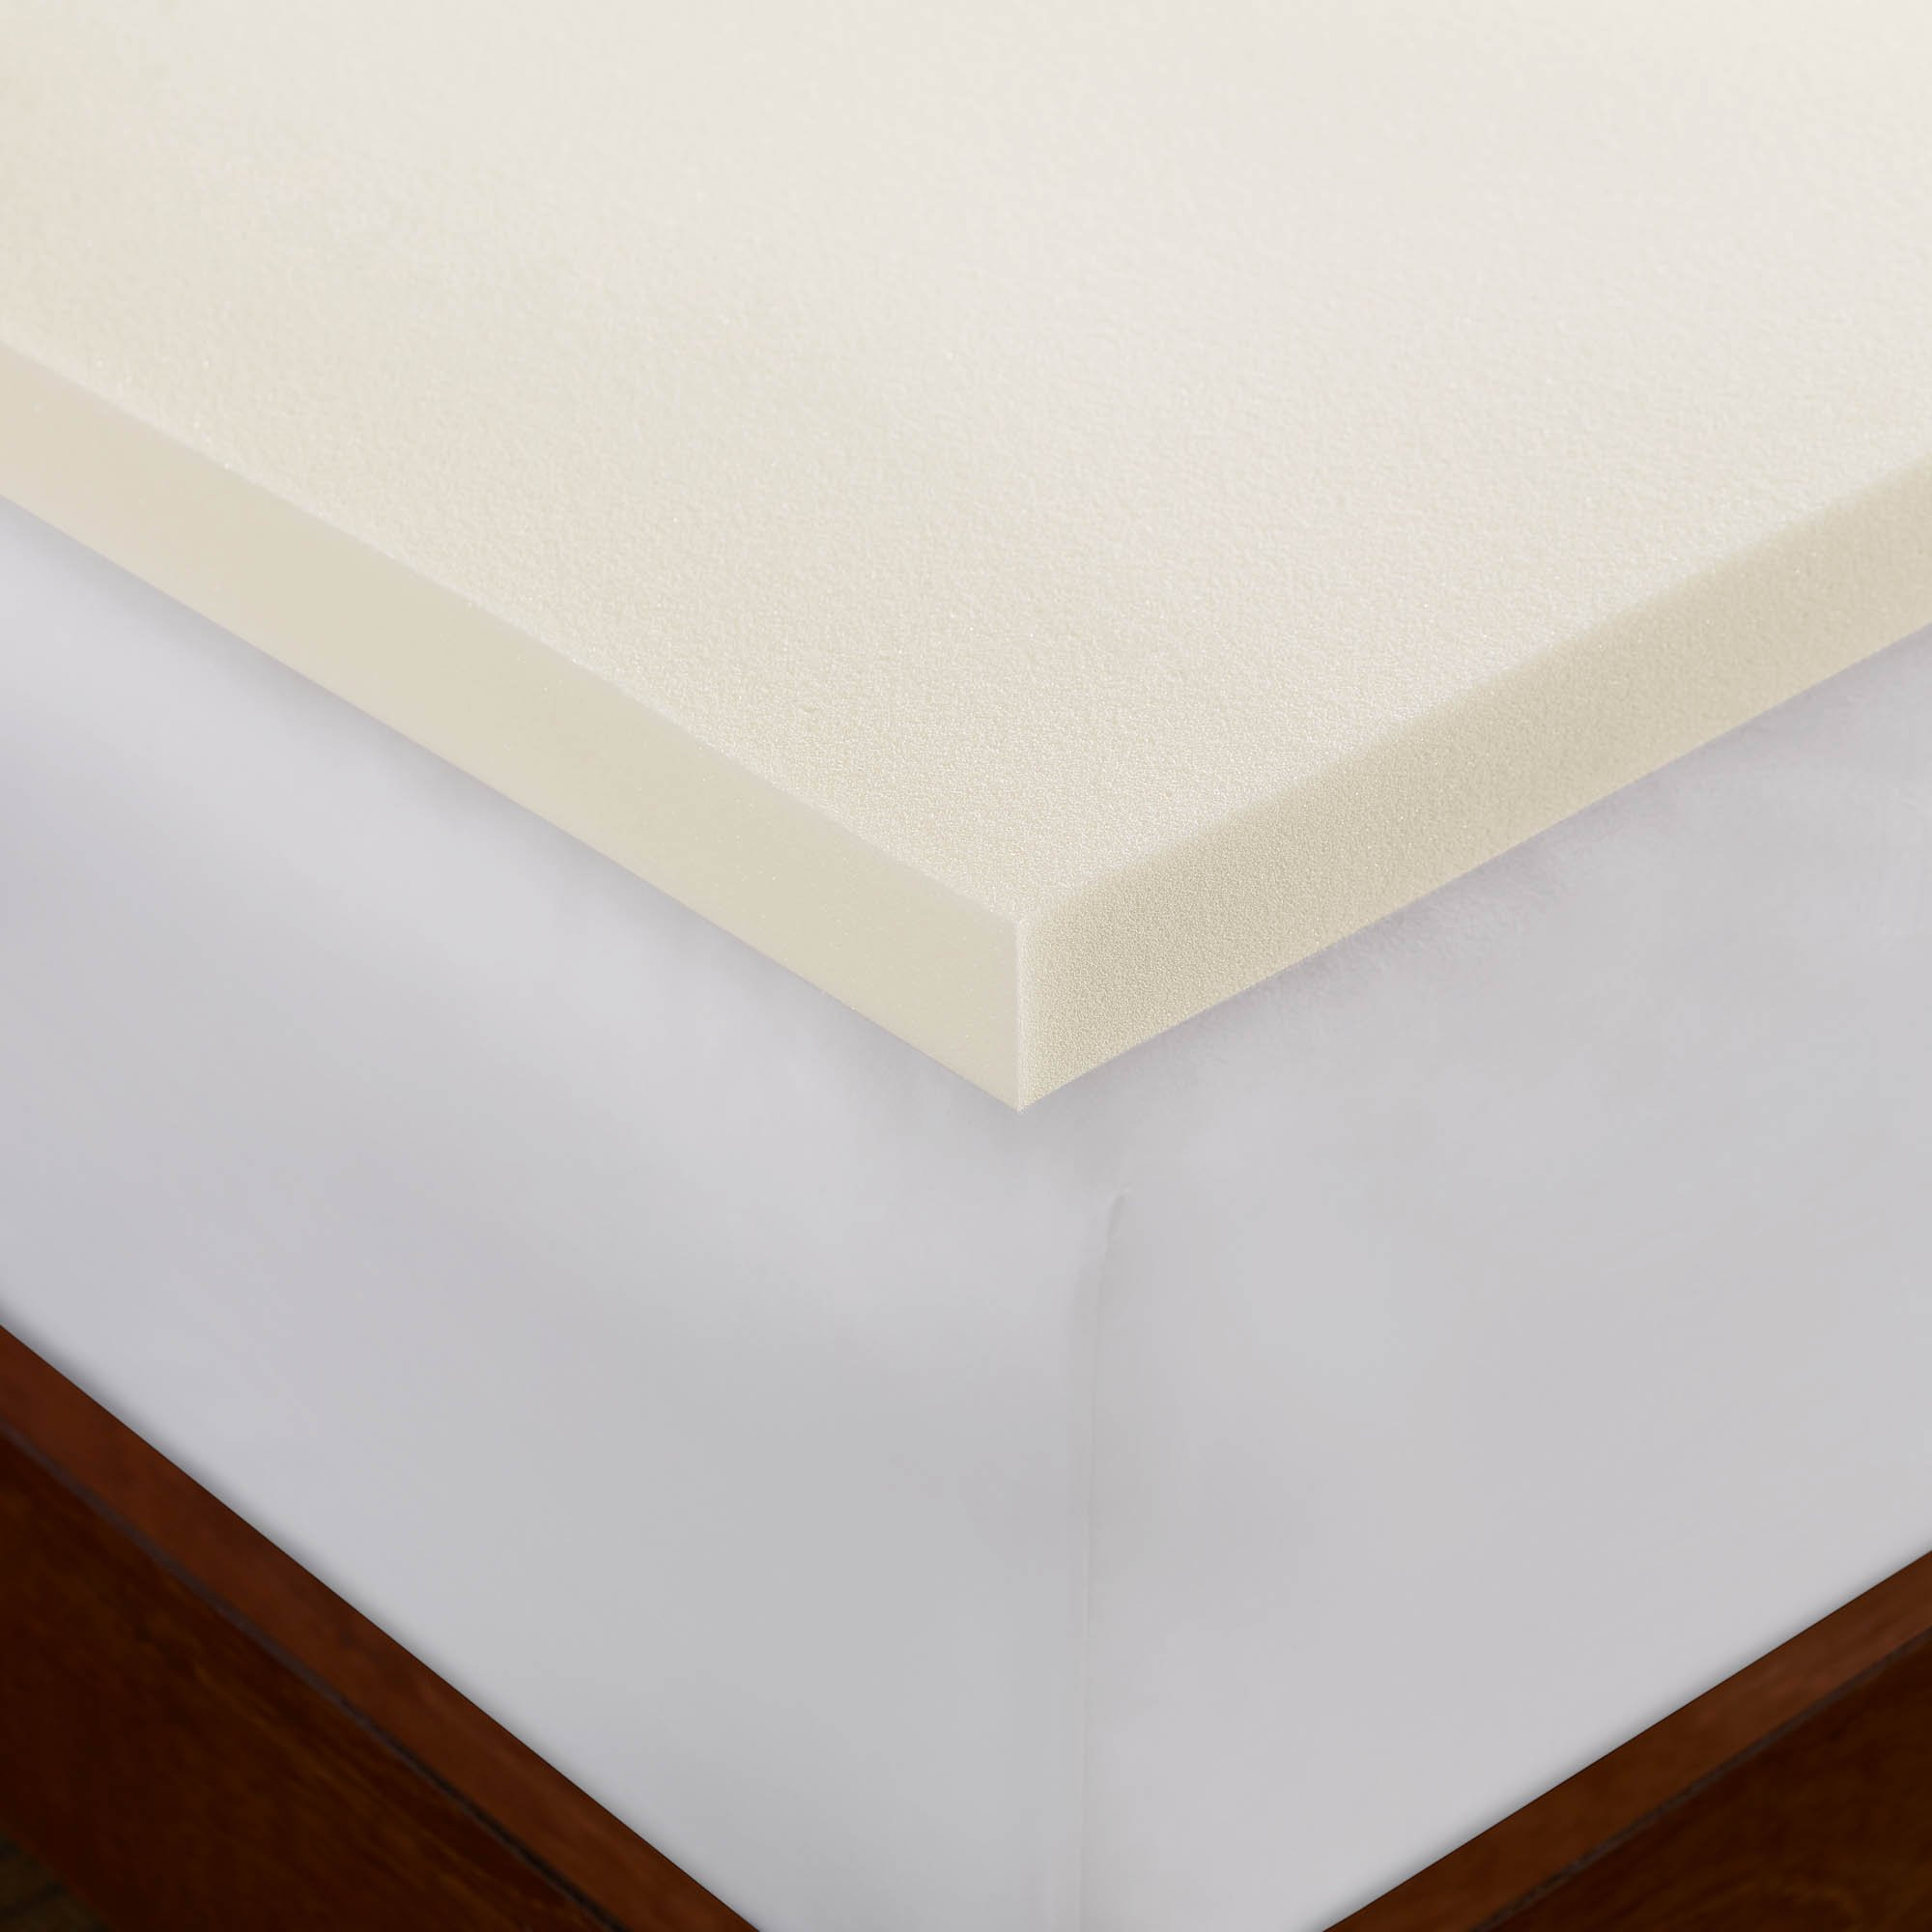 Sleep Innovations 2-inch Memory Foam Mattress Topper, Made in The USA with a 5-Year Warranty - Queen by Sleep Innovations